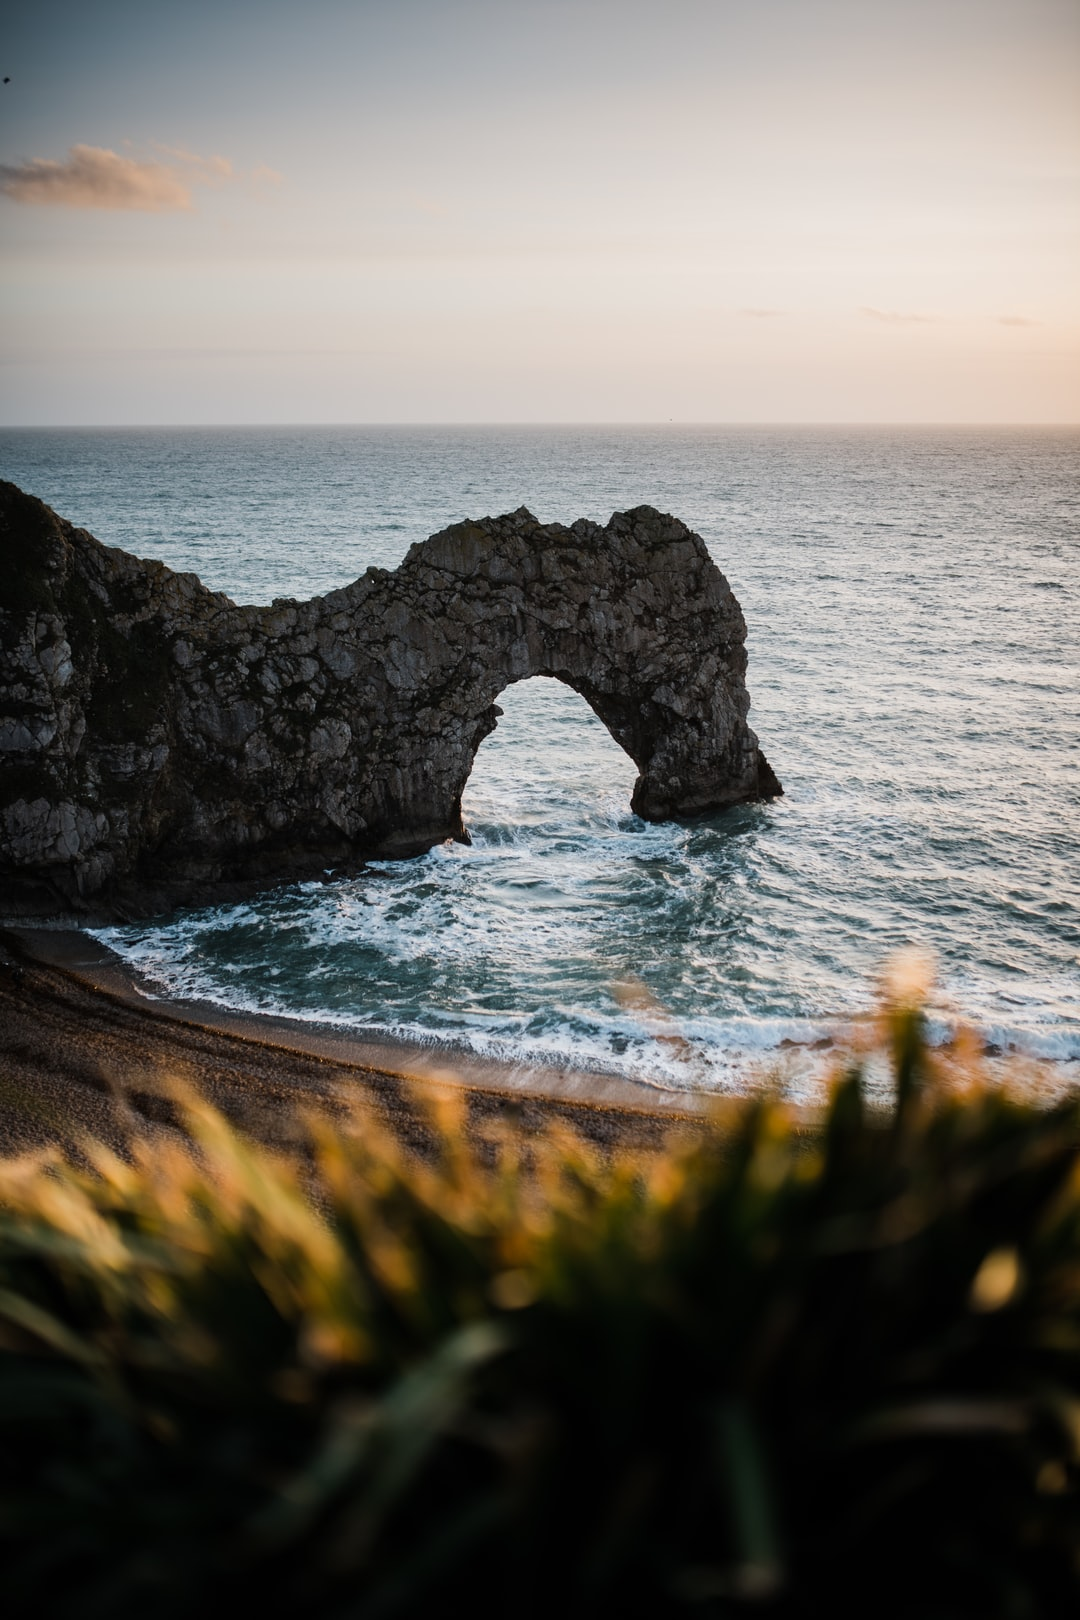 Durdle Door on the Dorset coastline, UK